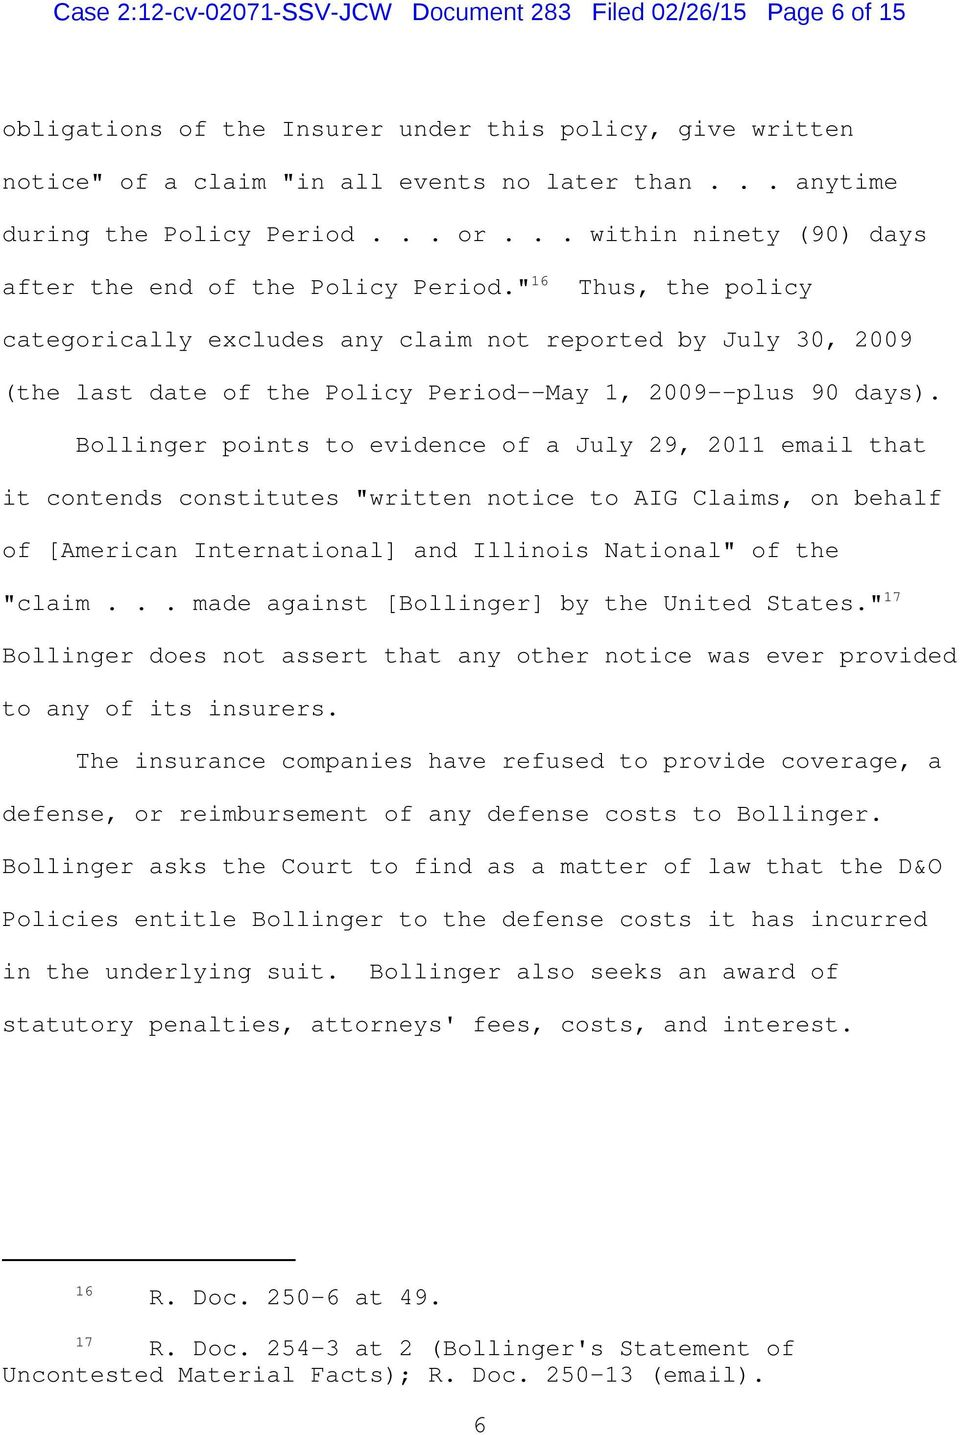 """ 16 Thus, the policy categorically excludes any claim not reported by July 30, 2009 (the last date of the Policy Period--May 1, 2009--plus 90 days)."